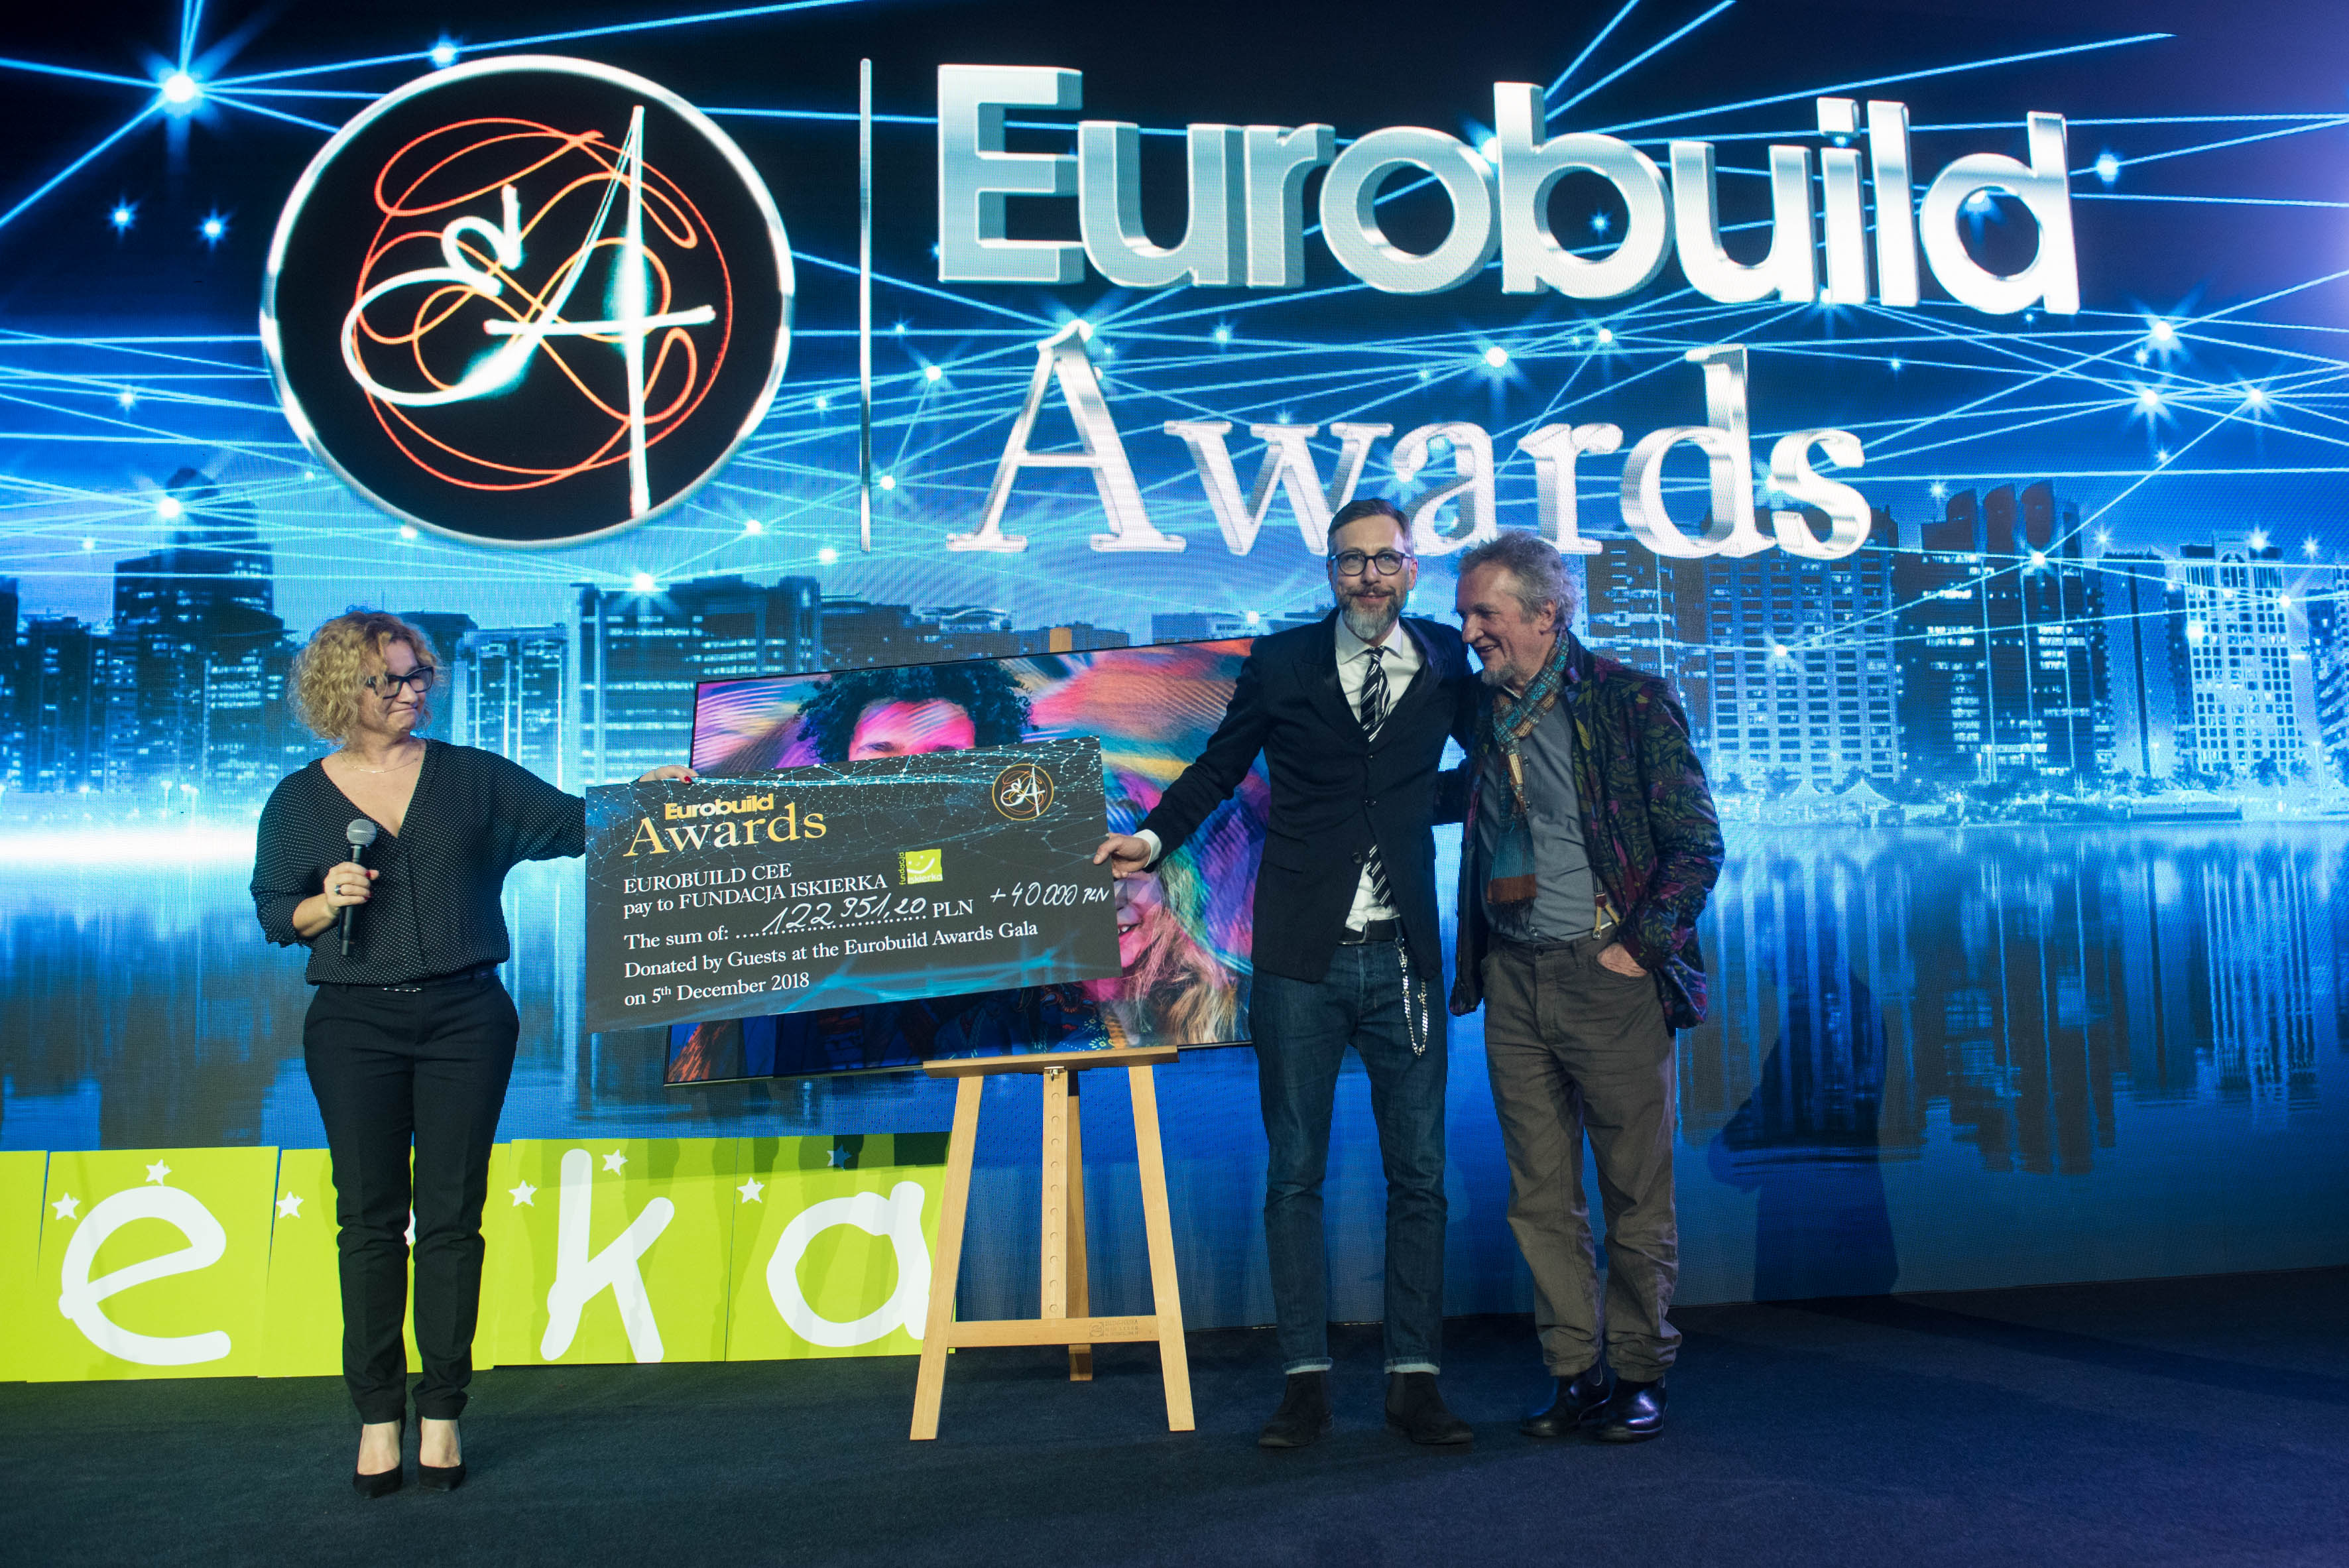 Eurobuild Awards 2018: almost PLN 163,000 was raised for the needs of seriously ill children